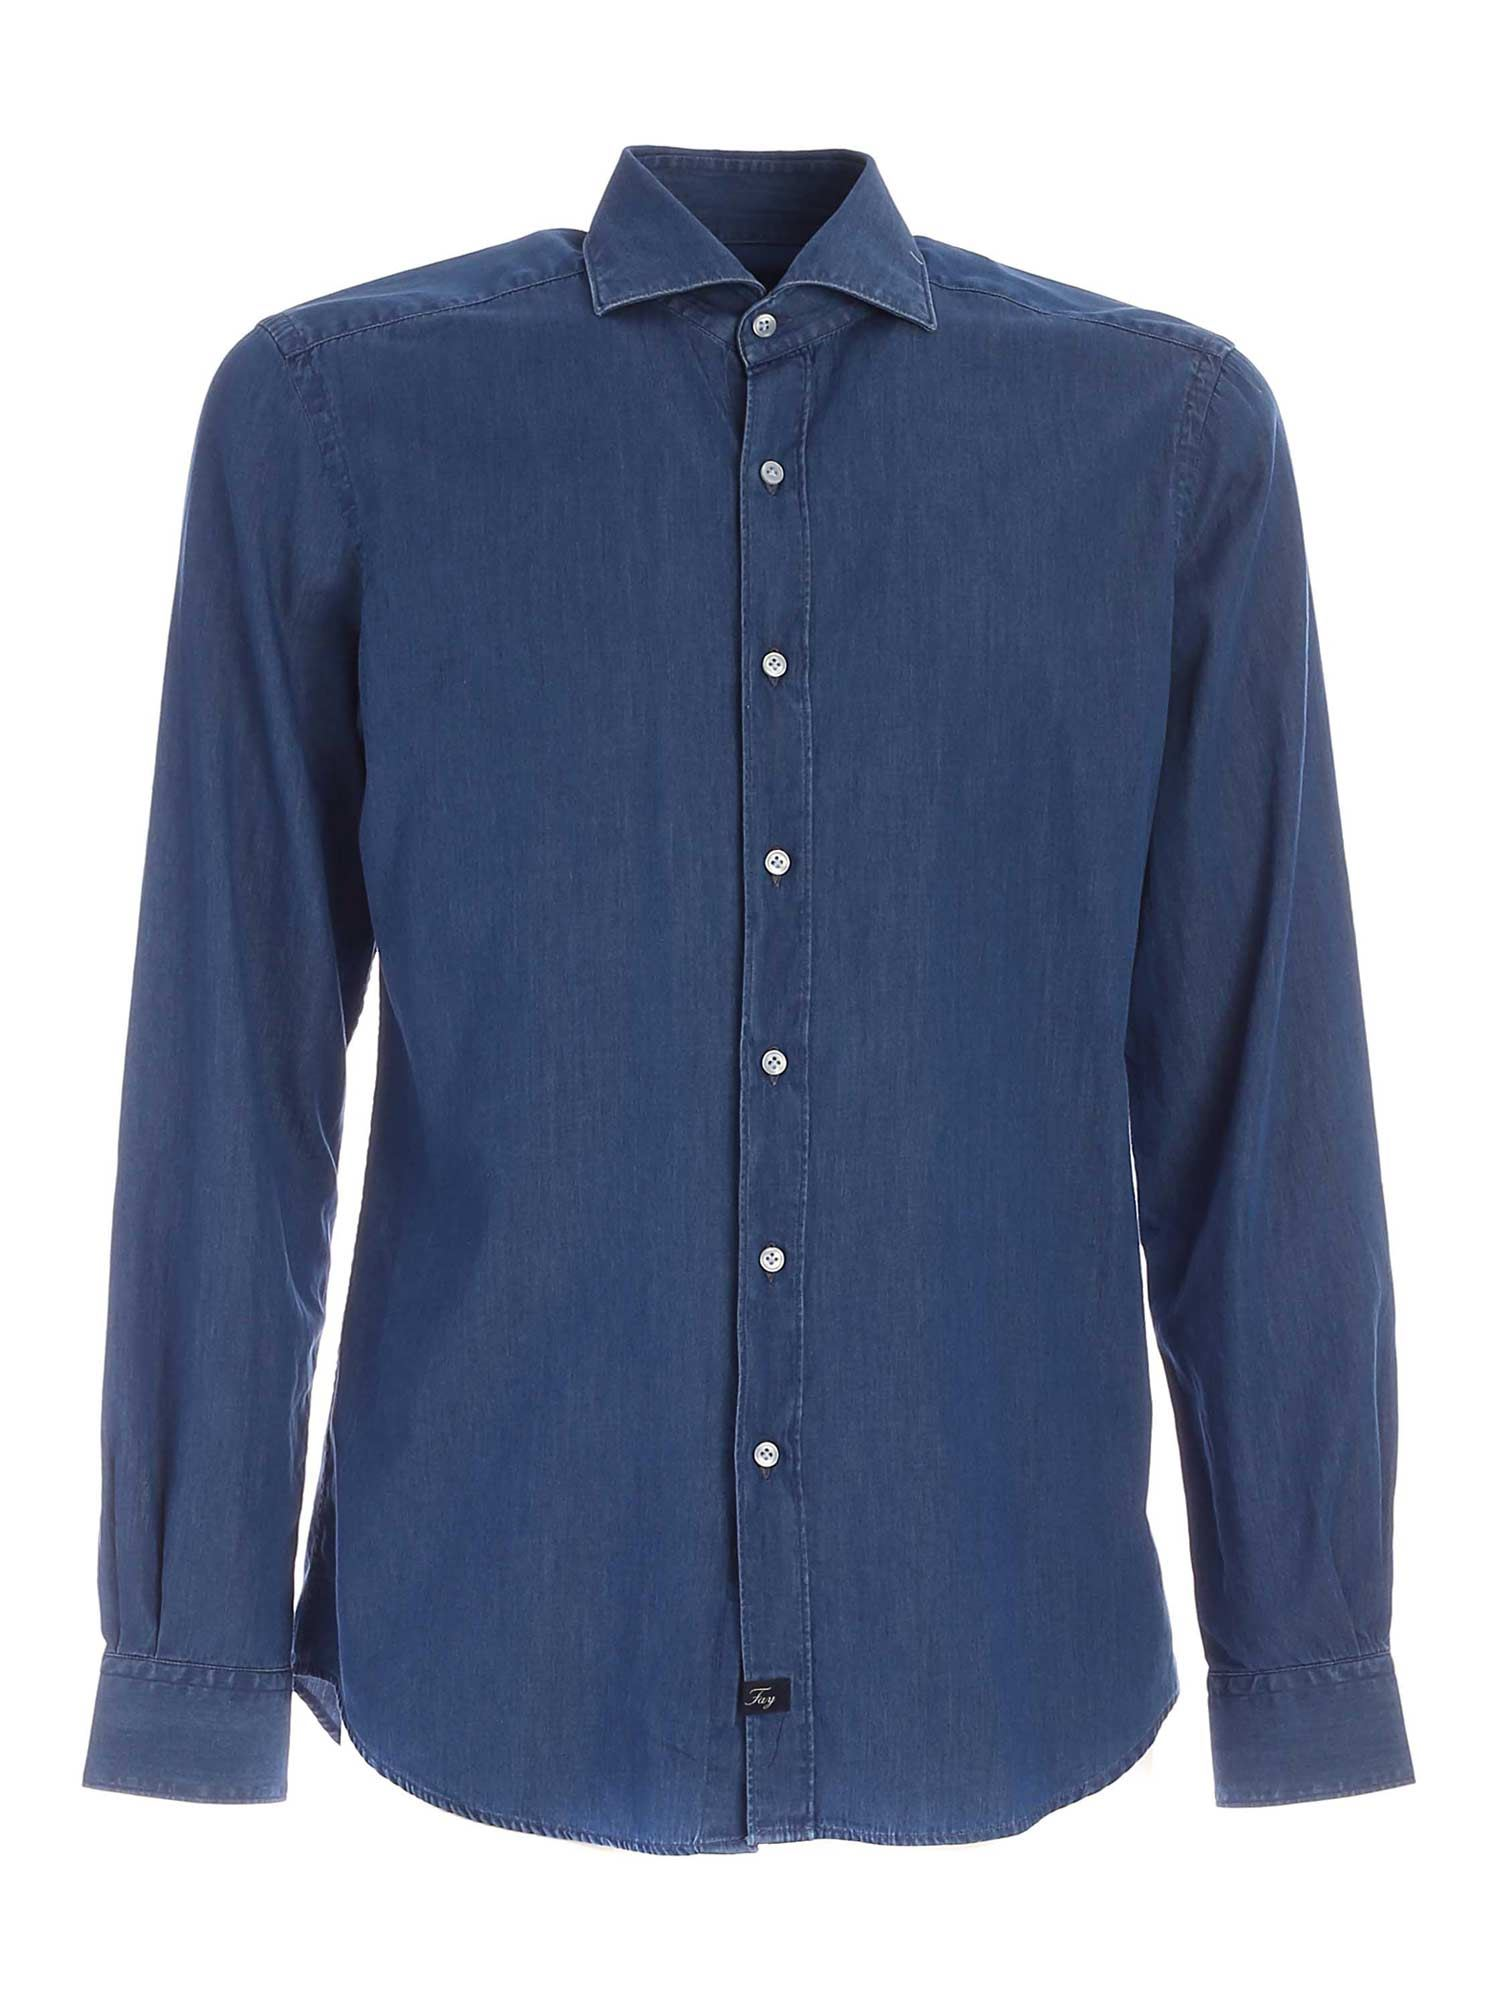 Fay Cottons LOGO LABEL SHIRT IN BLUE